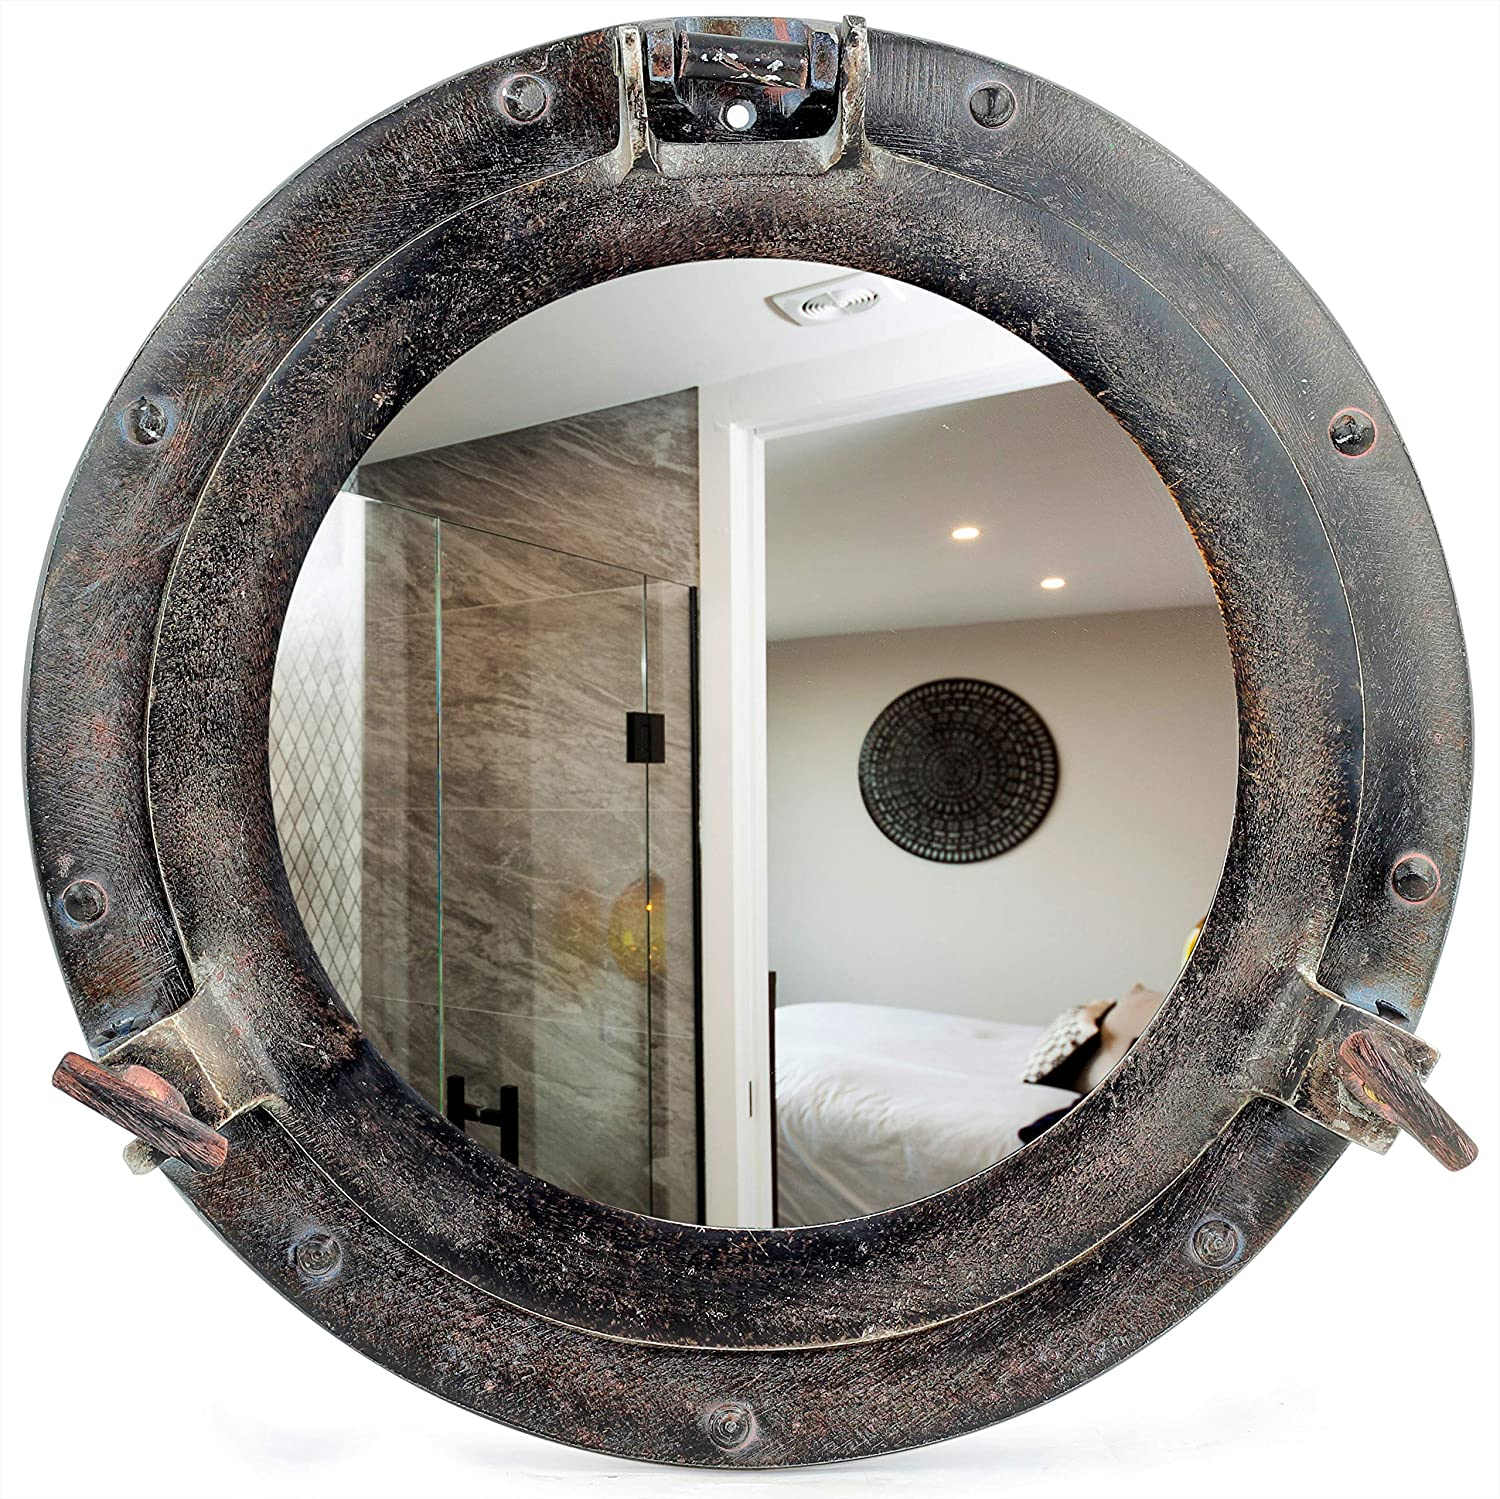 Rustic Dark Black Patina Porthole | Vintage Ship Decor Mirror | Pirate Gift | Black Chick Stylish Old Fashioned Wall & Door Fixtures Windows (Reflective Mirror, 12 Inches)